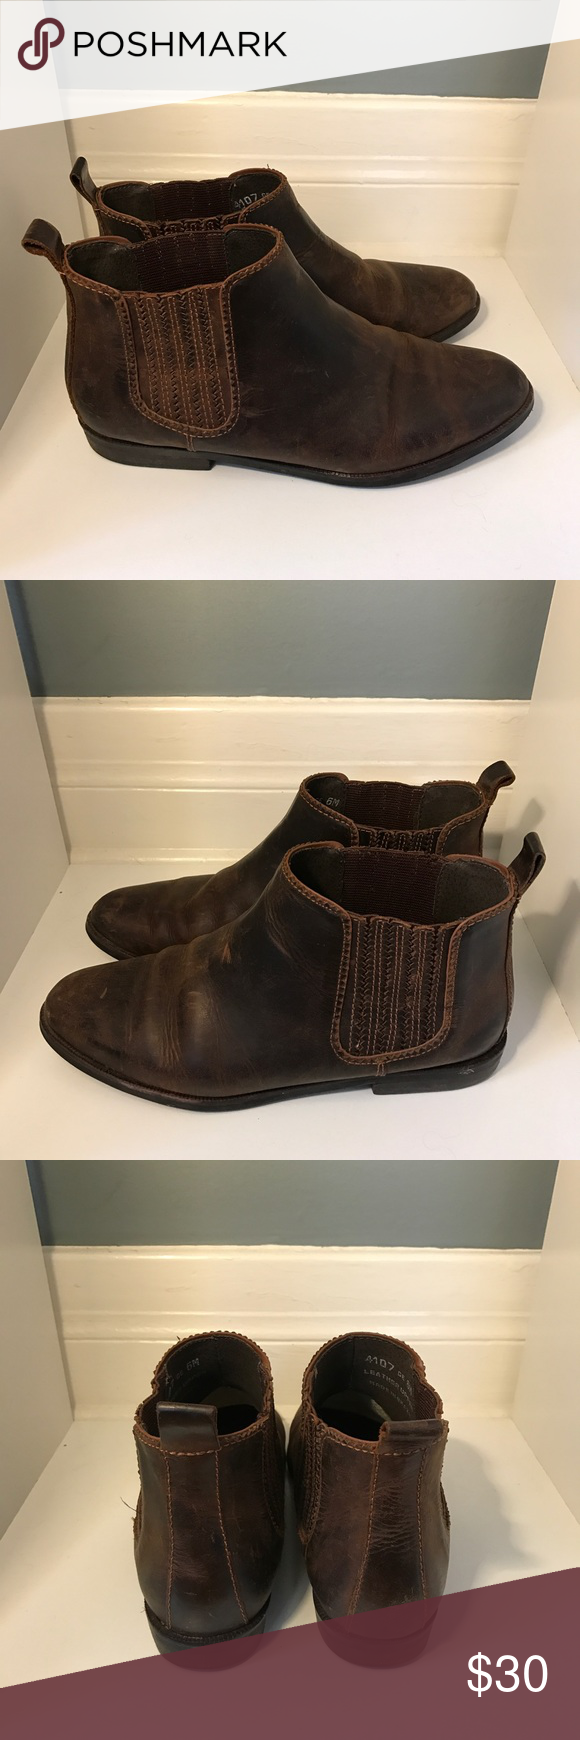 BASS Distressed Leather Botties BASS distressed leather booties.  Worn only a few times.  In good condition. Bass Shoes Ankle Boots & Booties